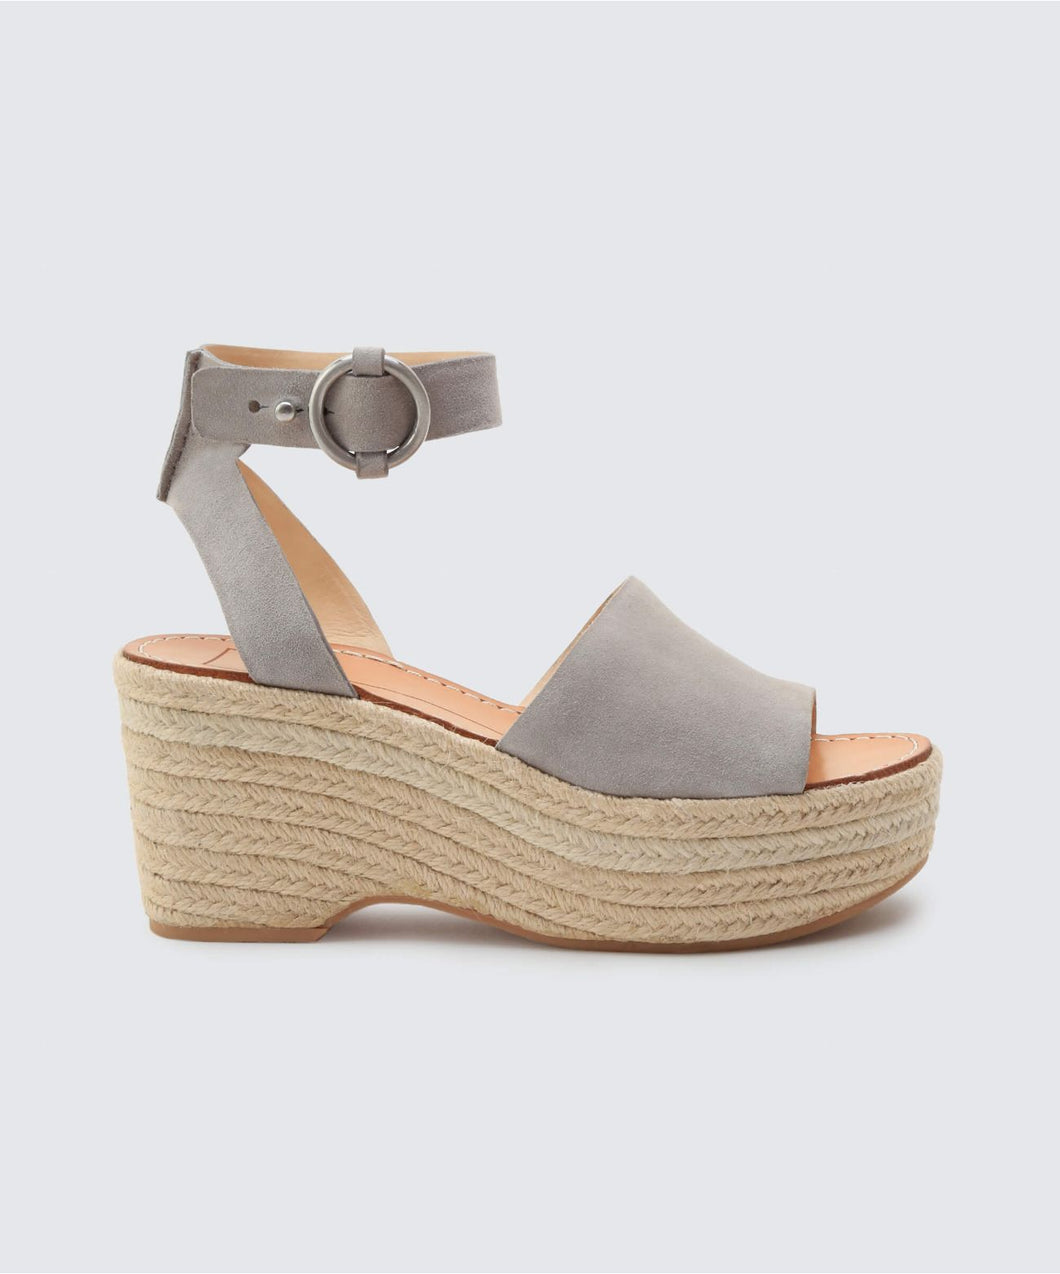 LESLY WEDGES GREY -   Dolce Vita